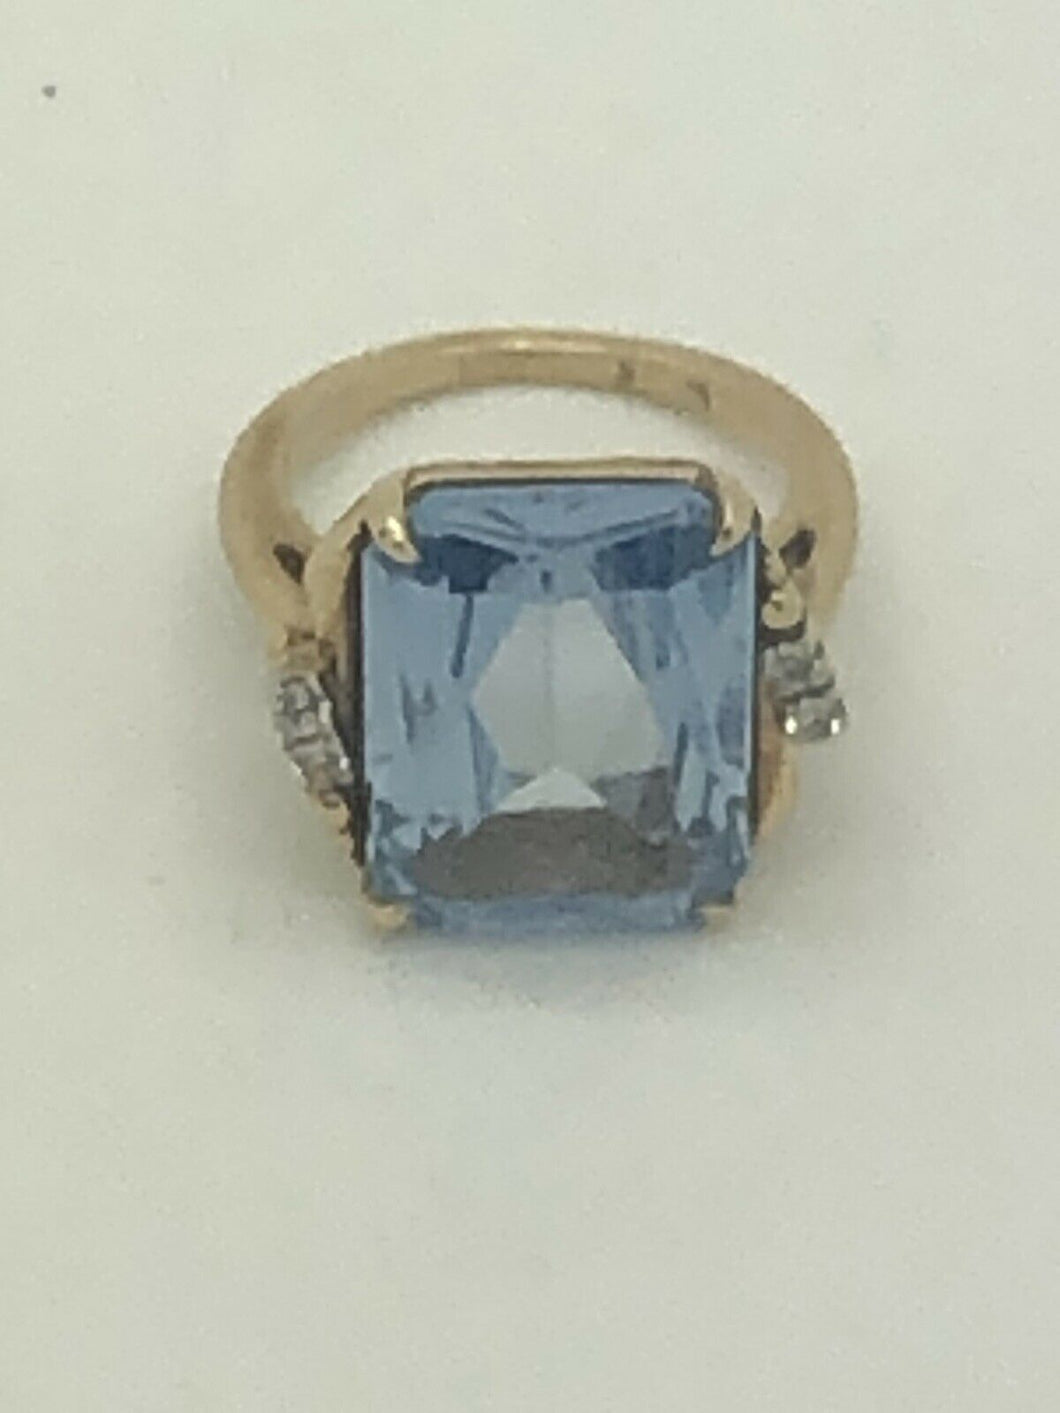 10k GOLD BLUE  EMERALD CUT TOPAZ, AND DIAMIND  RING 6.5g size 5.5  5108